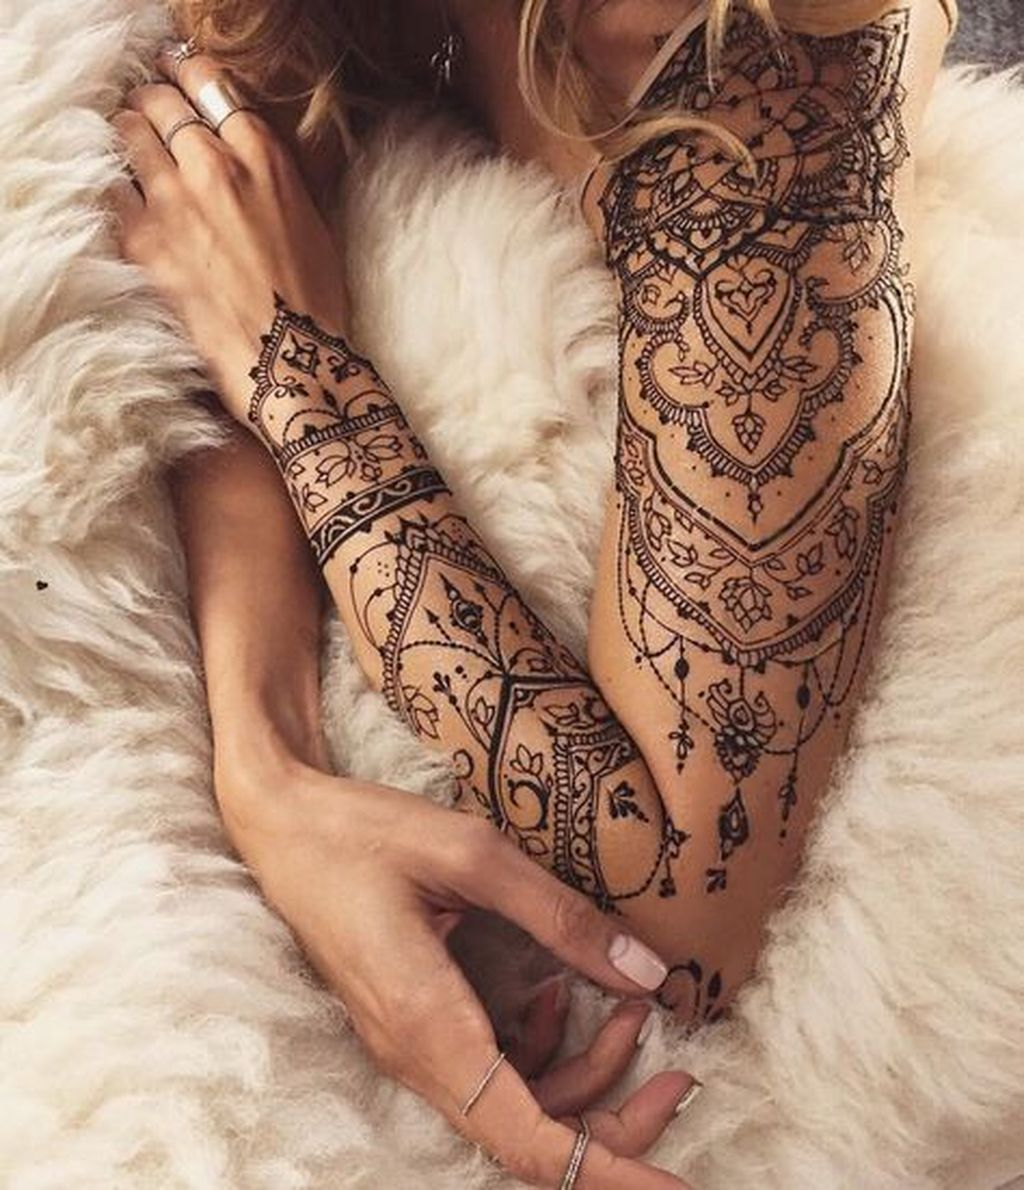 Pin By Randi Green On Henna Tattoos Tattoo Designs Sleeve Tattoos